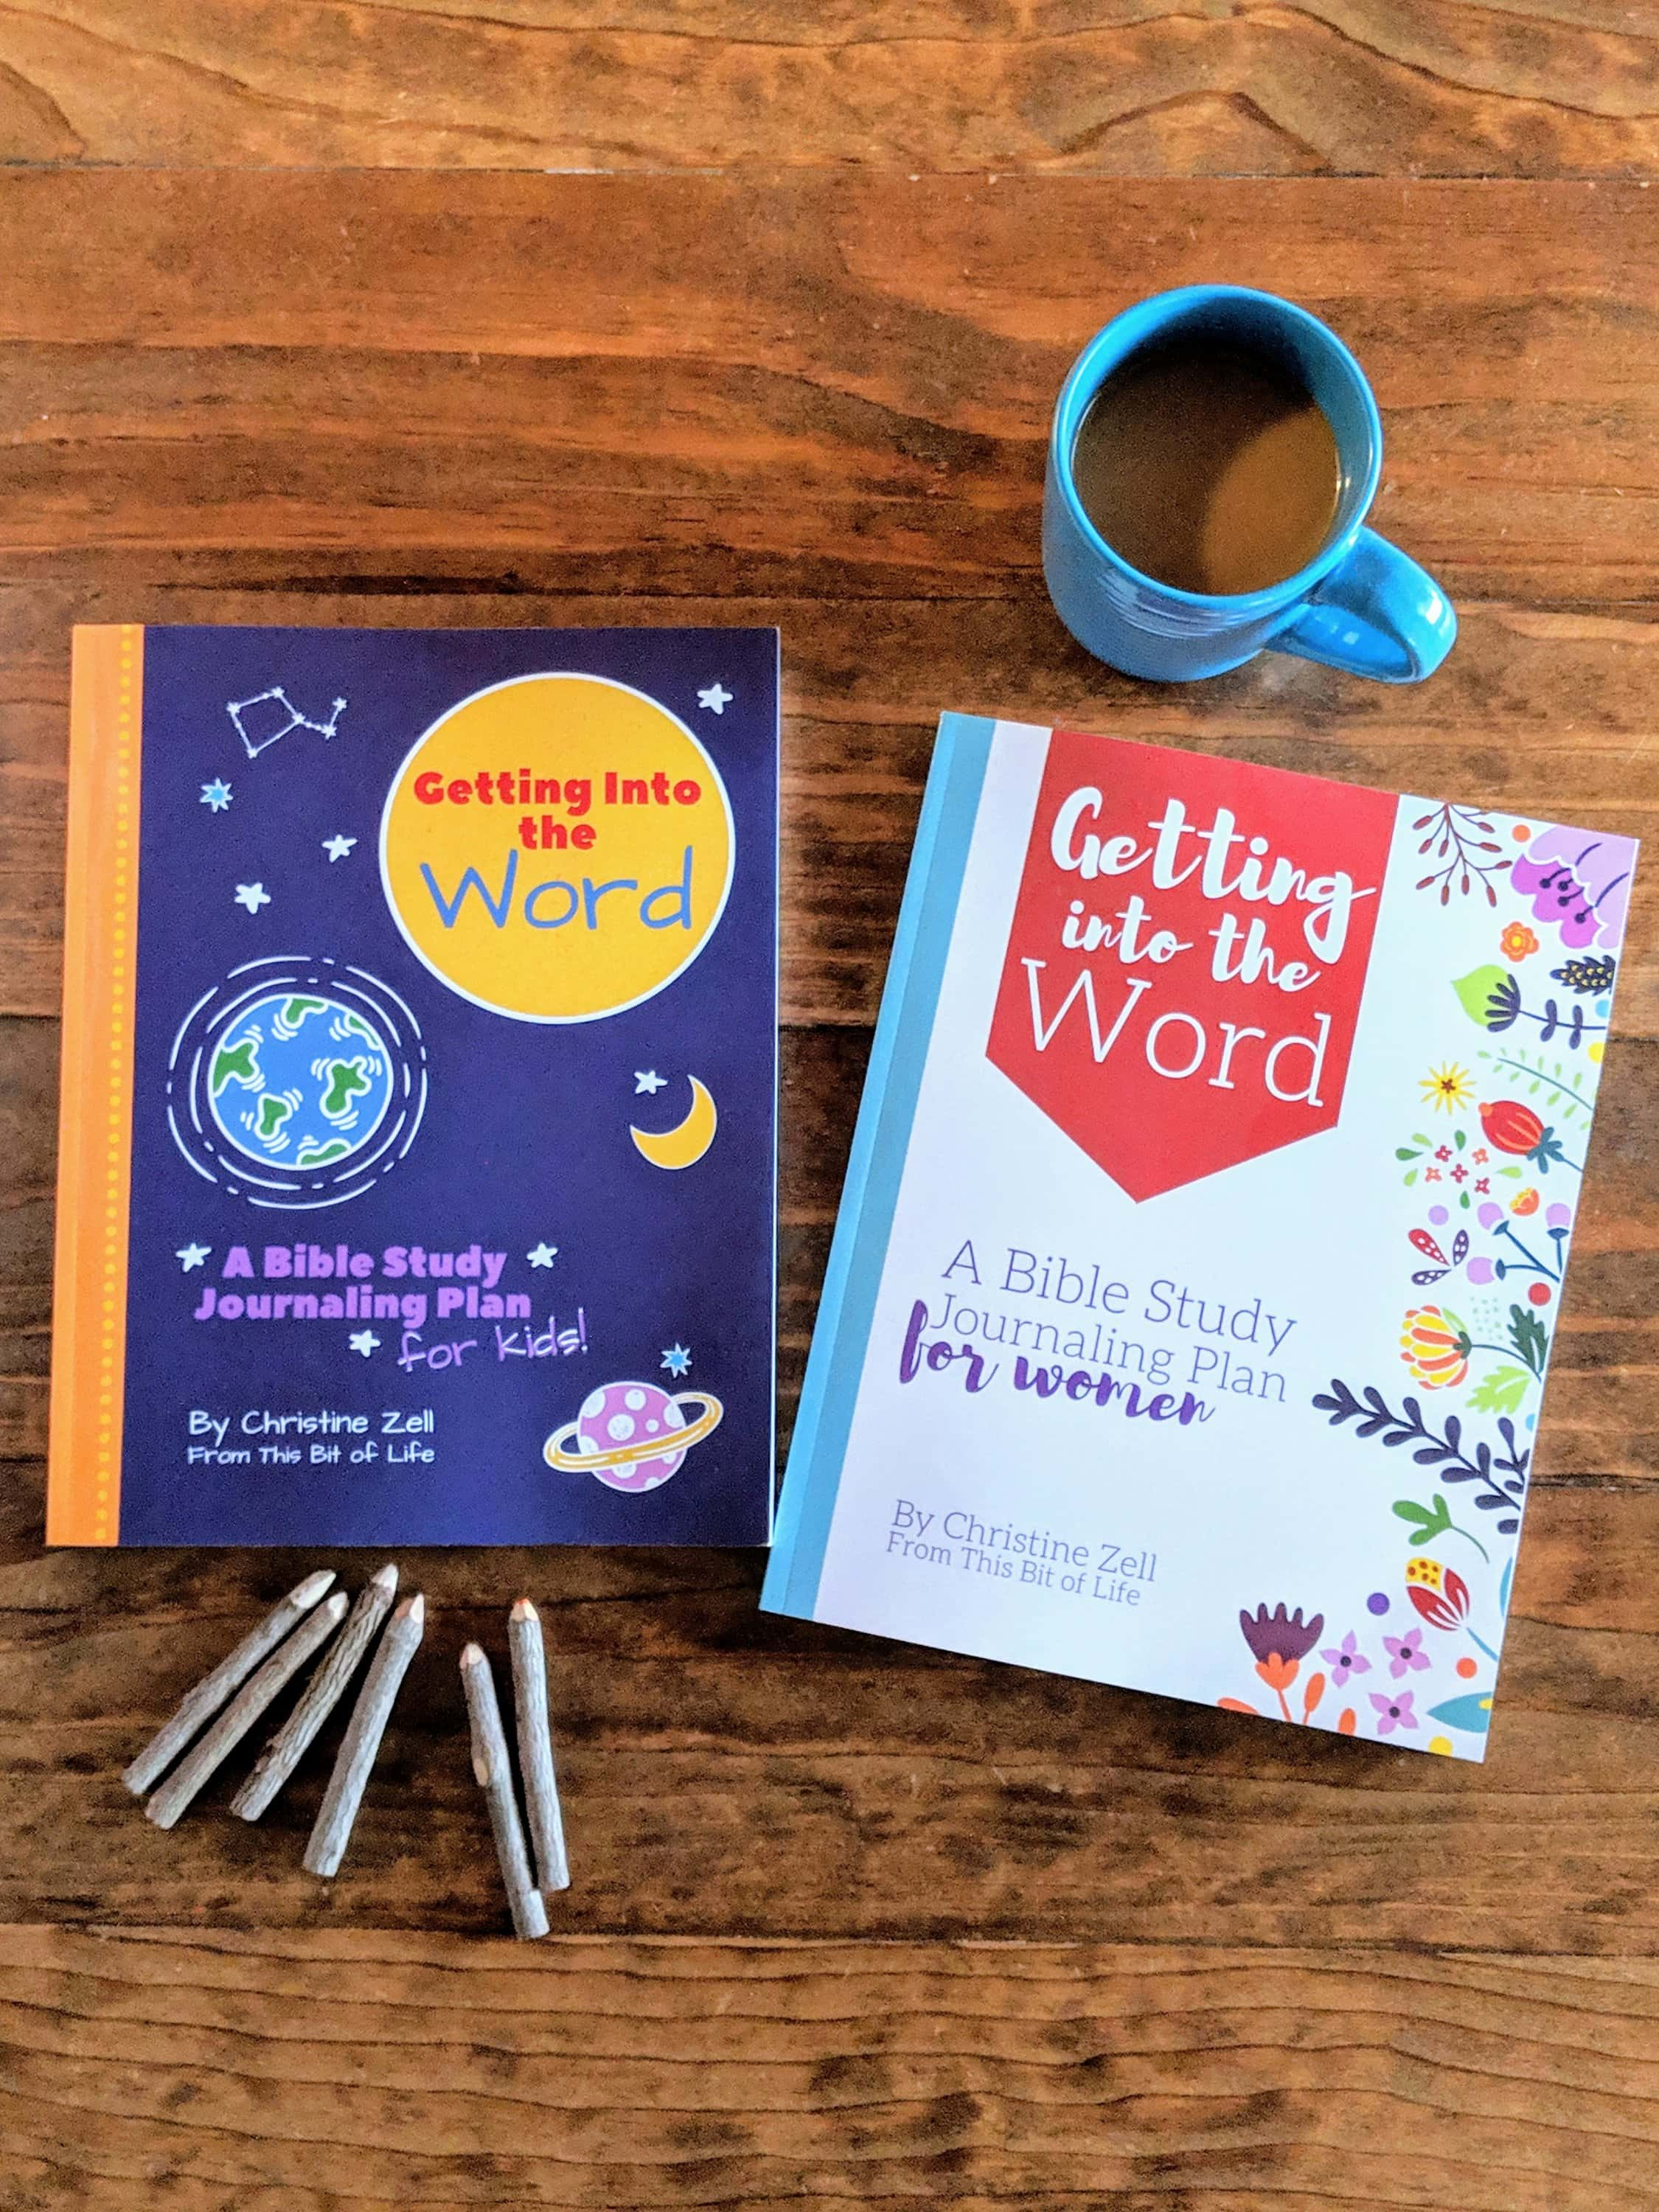 Getting Into the Word Bible Study Journaling Plan for Women and Kids